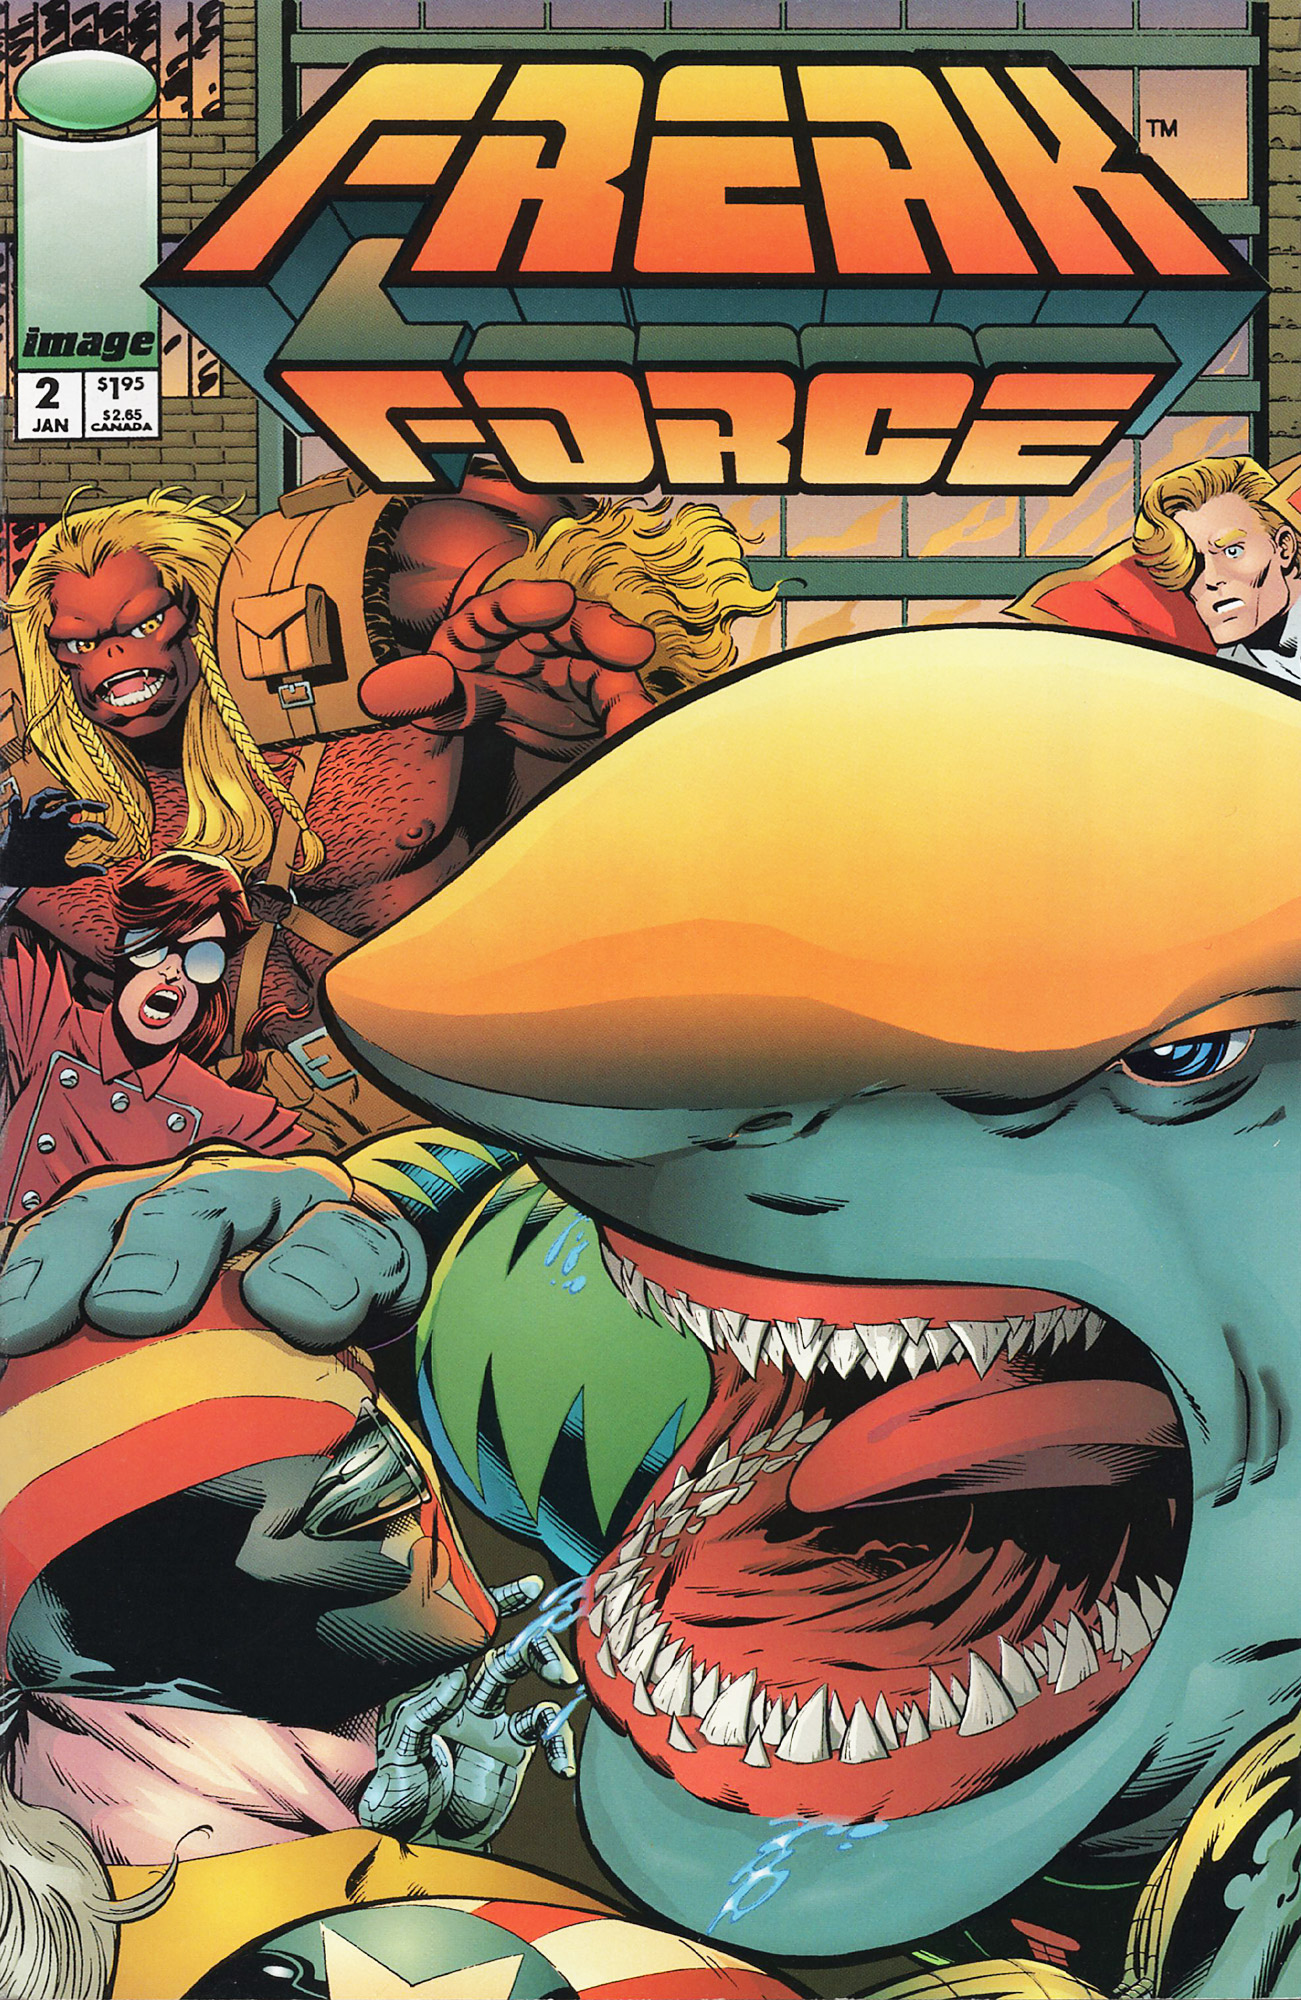 Cover Freak Force Vol.1 #02